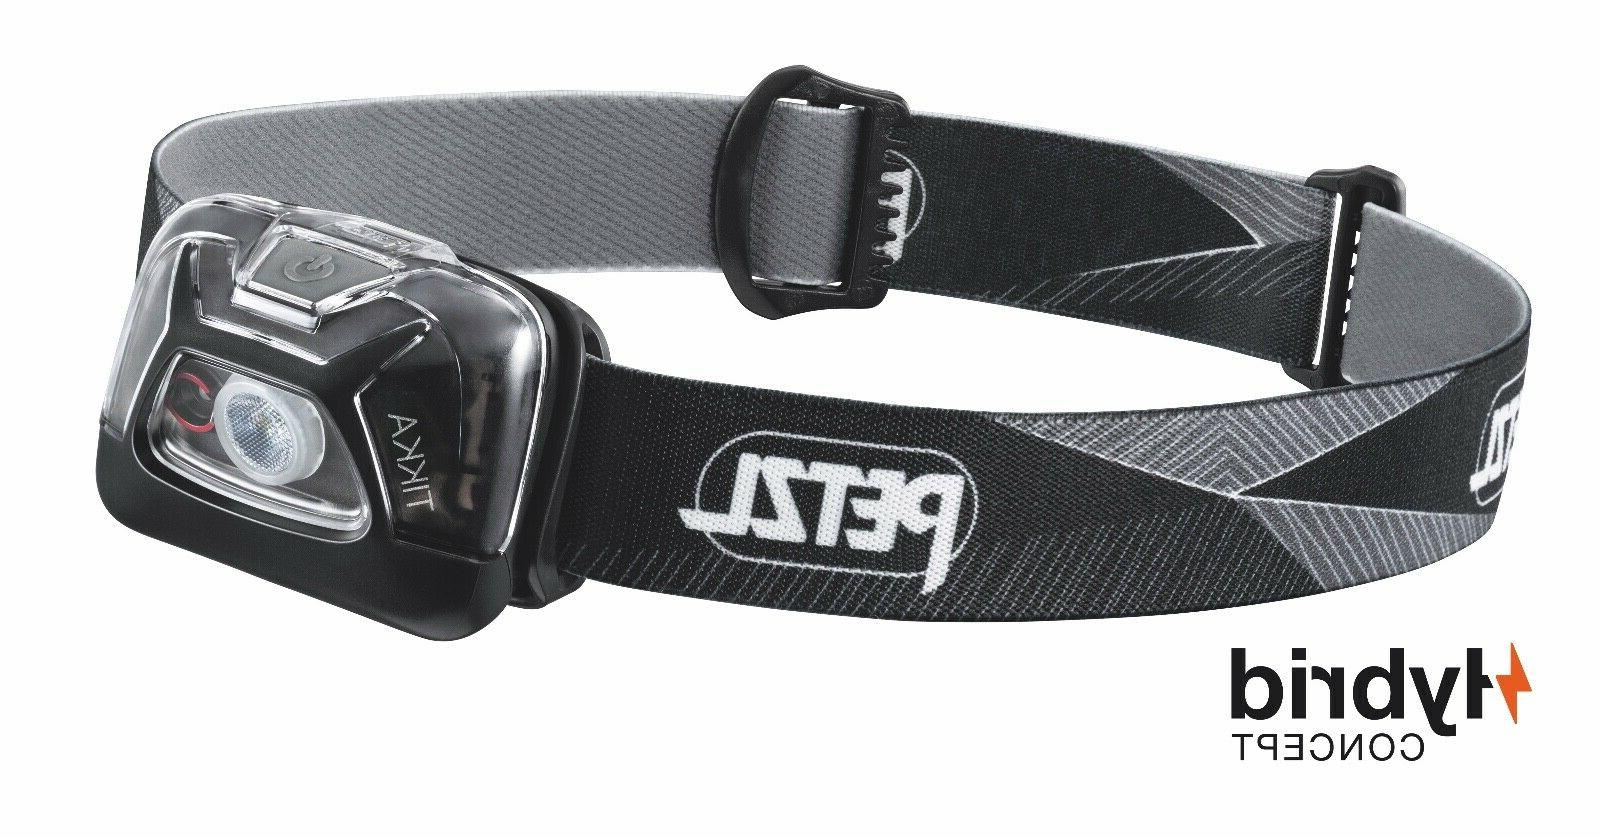 PETZL 300 HEADLAMP - 2019/2020 - E93